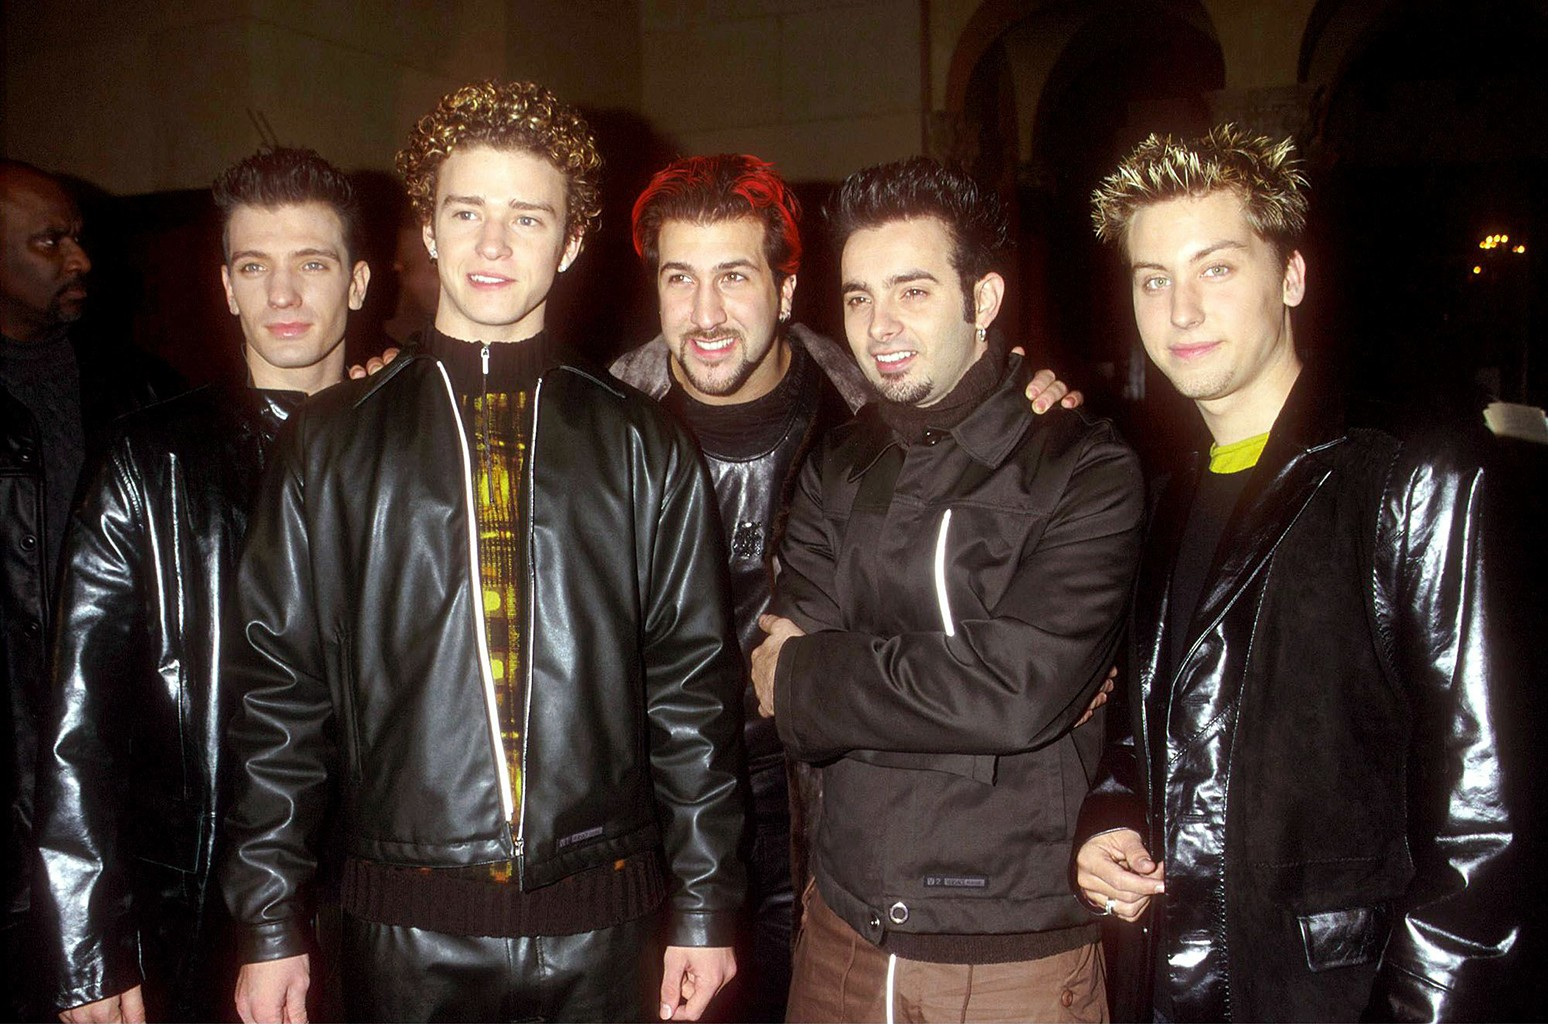 The Definitive Ranking of Every *NSYNC Music Video